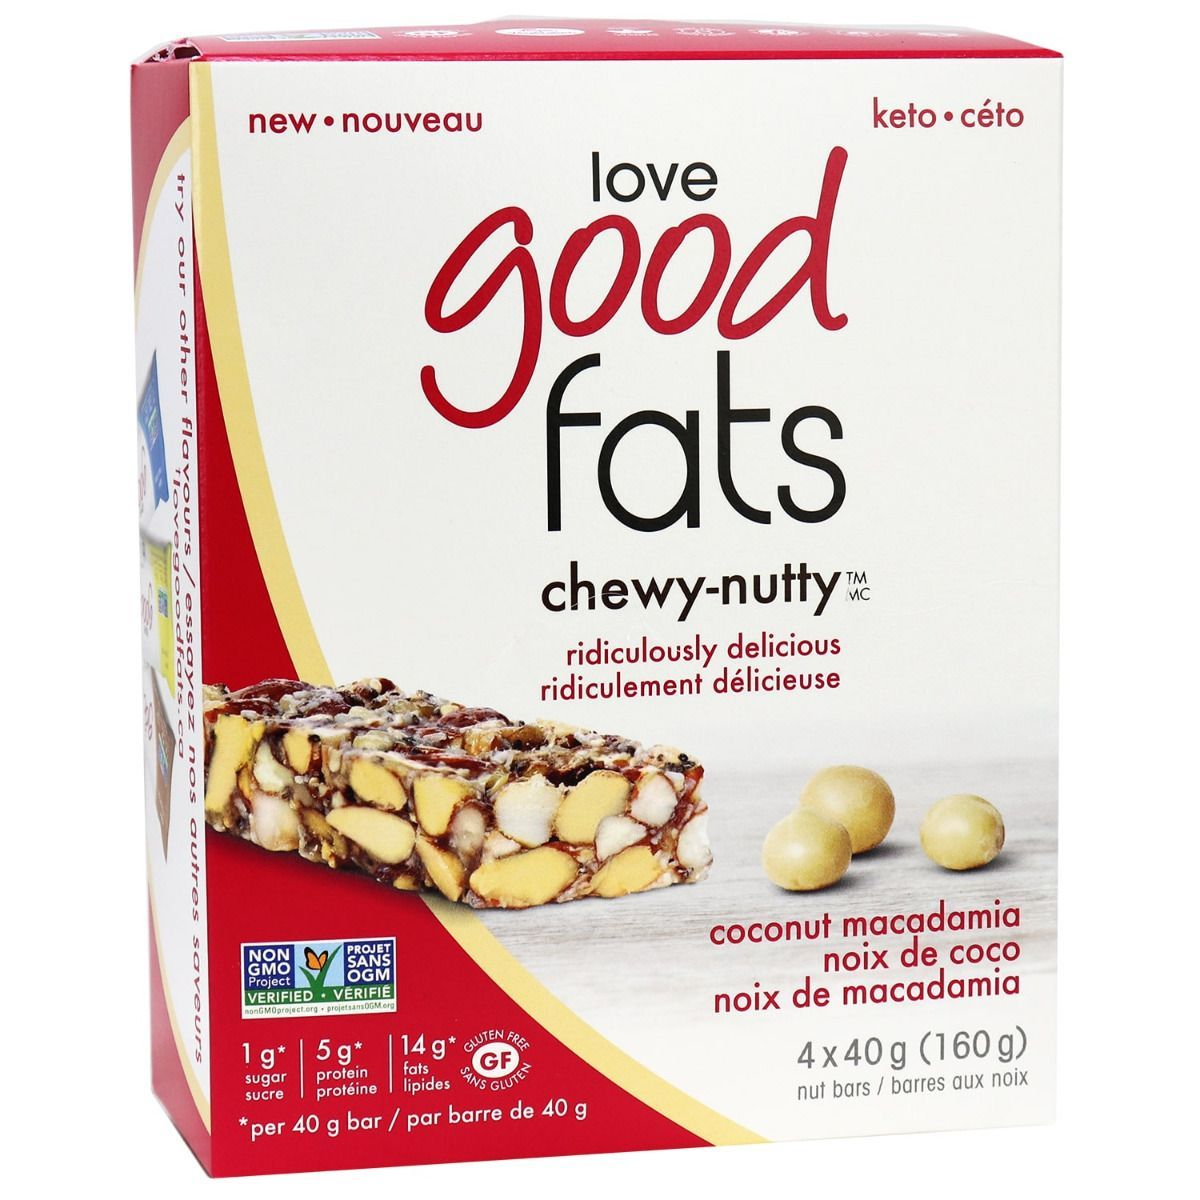 Food & Drink - Suzie's Good Fat Bars - Coconut Macadamia Chewy Nutty Bars, 4 X 40 G